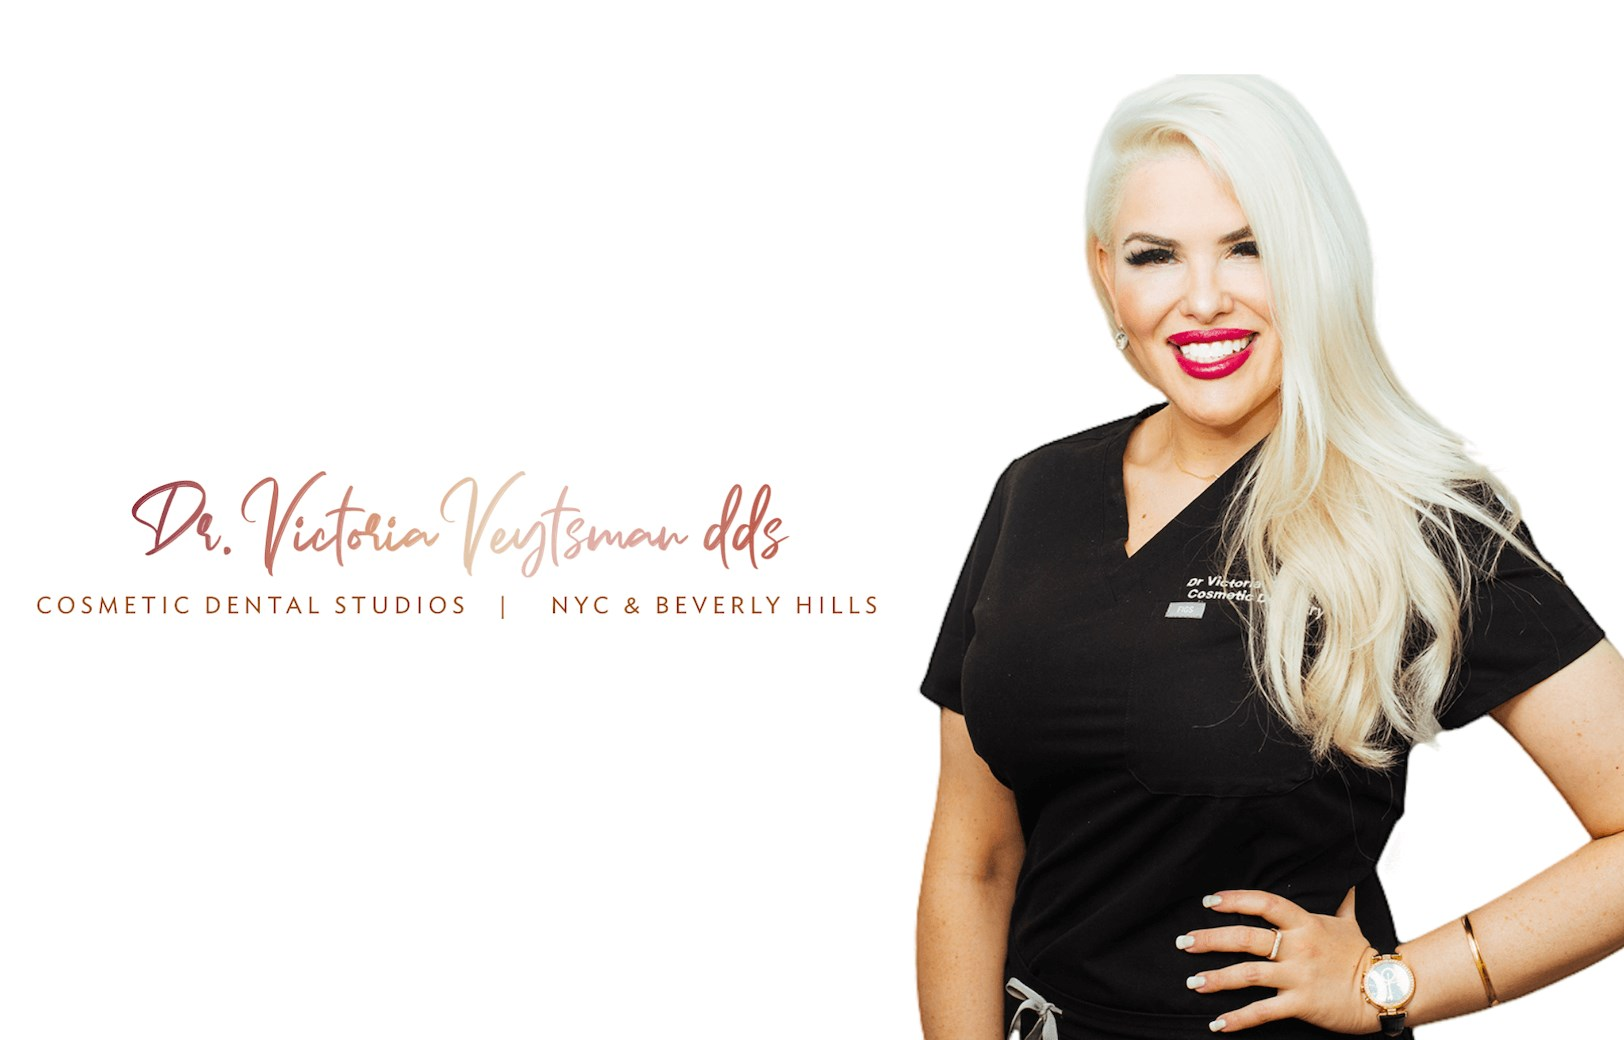 New York's Premier Dentist - Get to know Victoria Veytsman, D.D.S., a cosmetic and general dentist with a stellar education, extensive dental experience, and impressive awards.